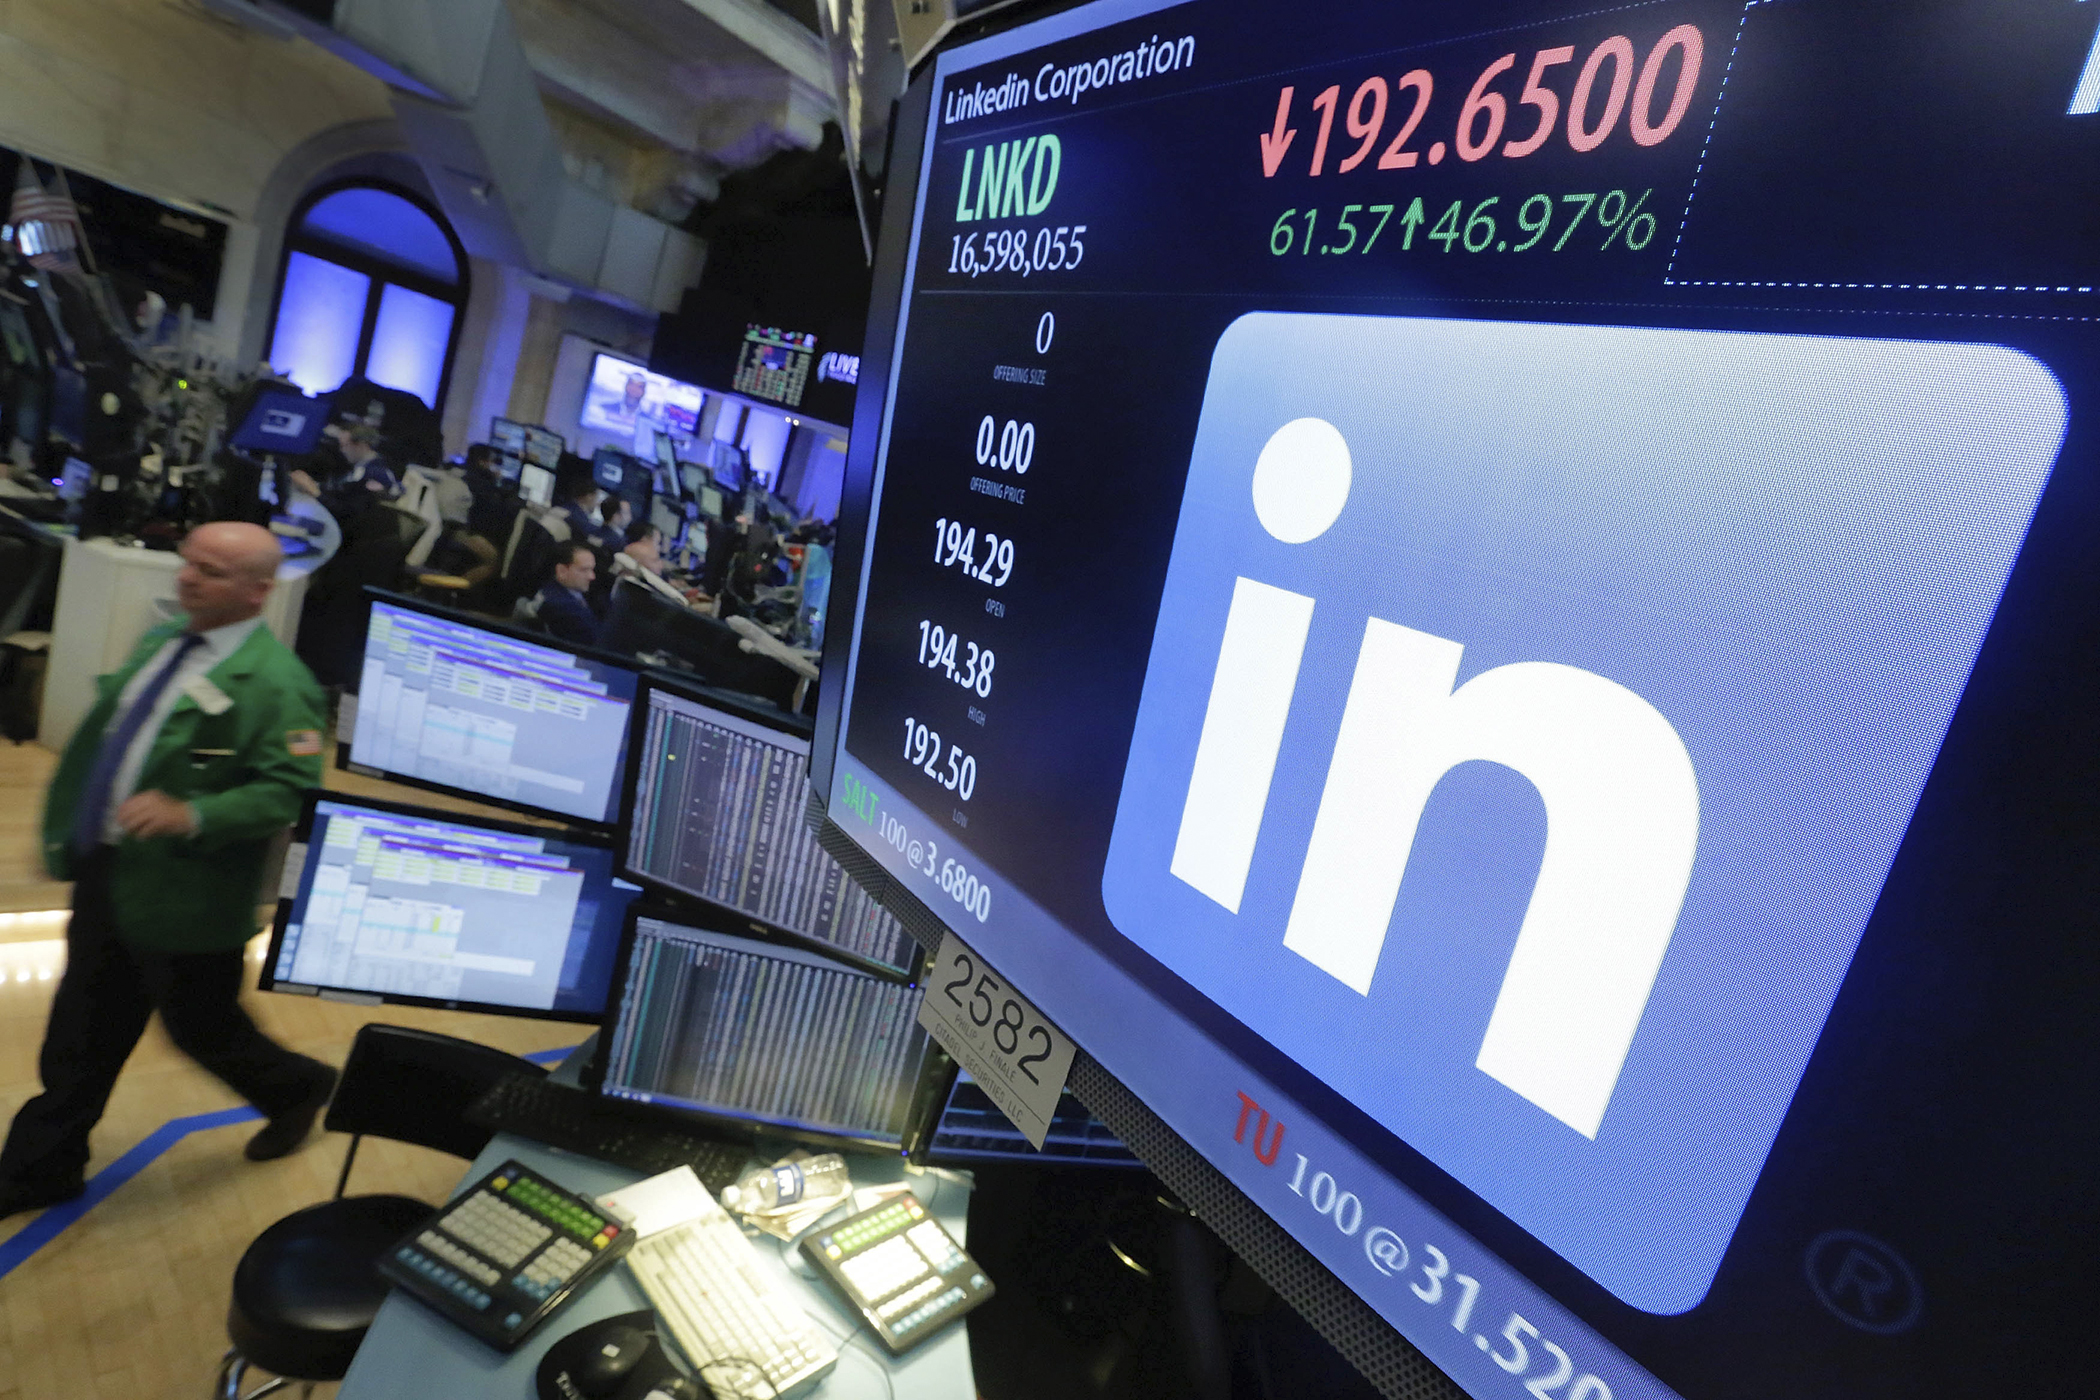 The LinkeIn logo appears on a screen at the post where it trades on the floor of the New York Stock Exchange, June 13, 2016. In a surprise move, Microsoft said Monday that it is buying professional networking service site LinkedIn for about $26.2 billion.